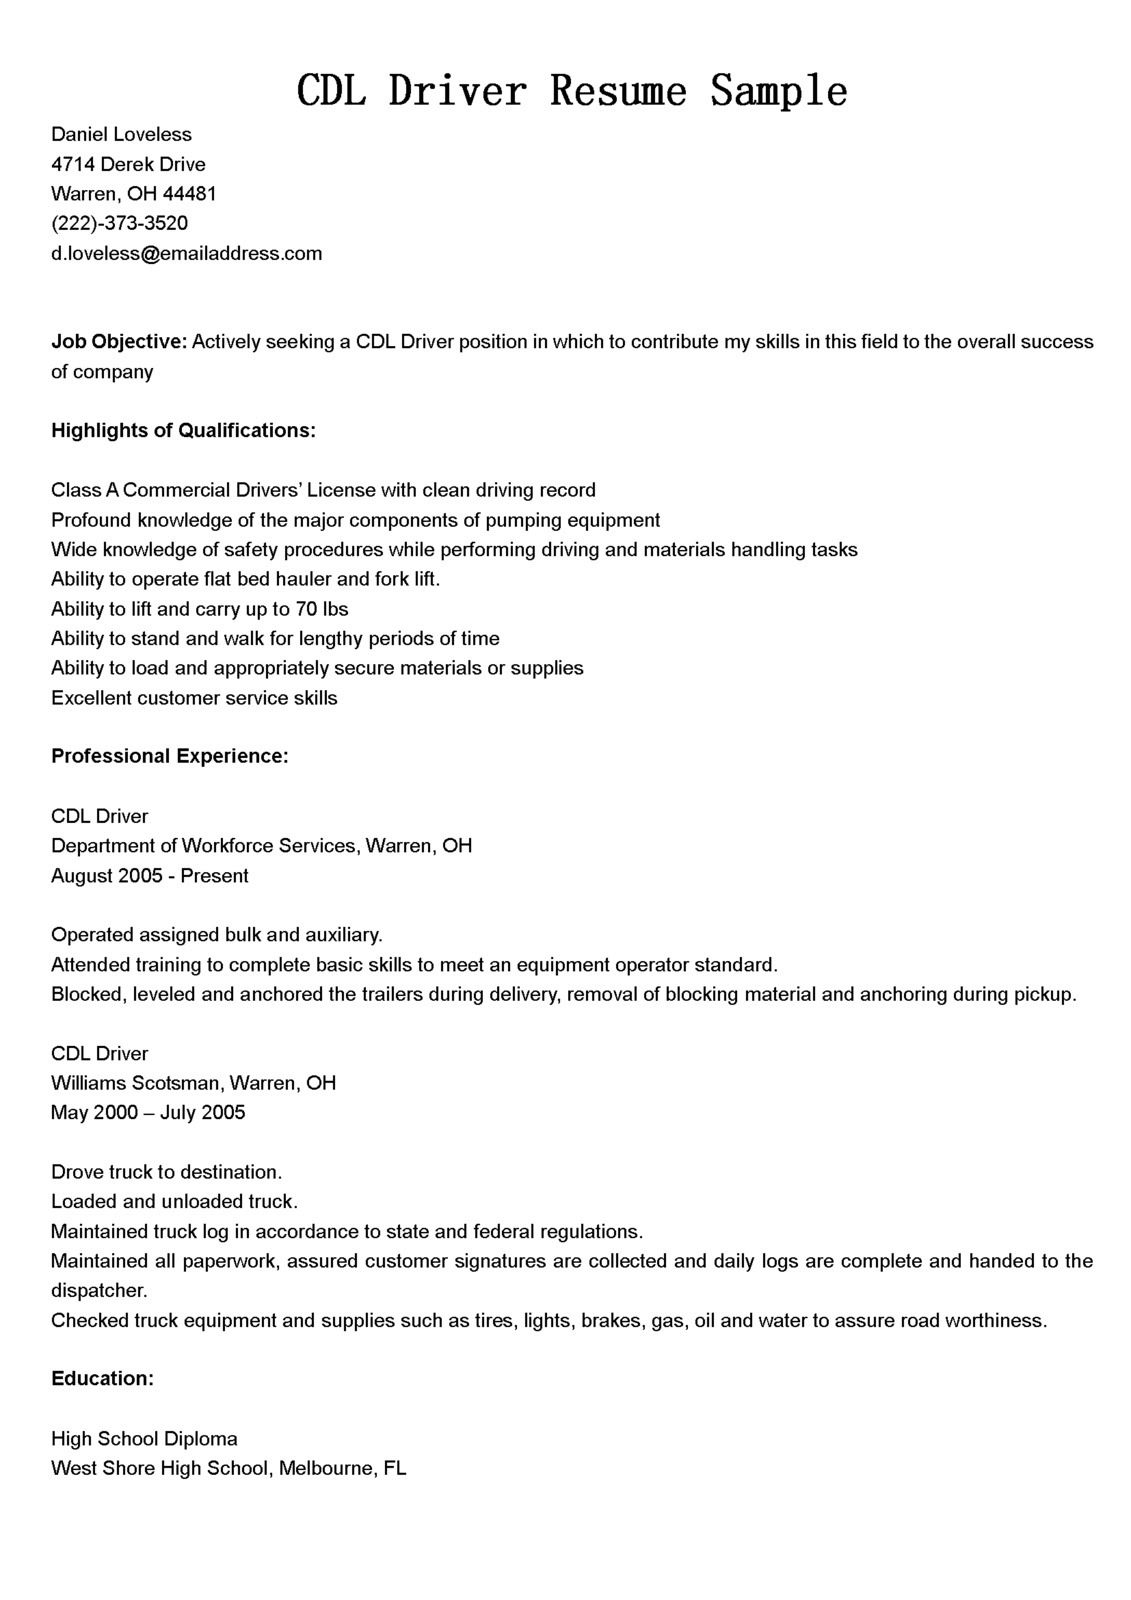 resume sample for truck driver service resume resume sample for truck driver truck driver resume best sample resume driver resumes cdl driver